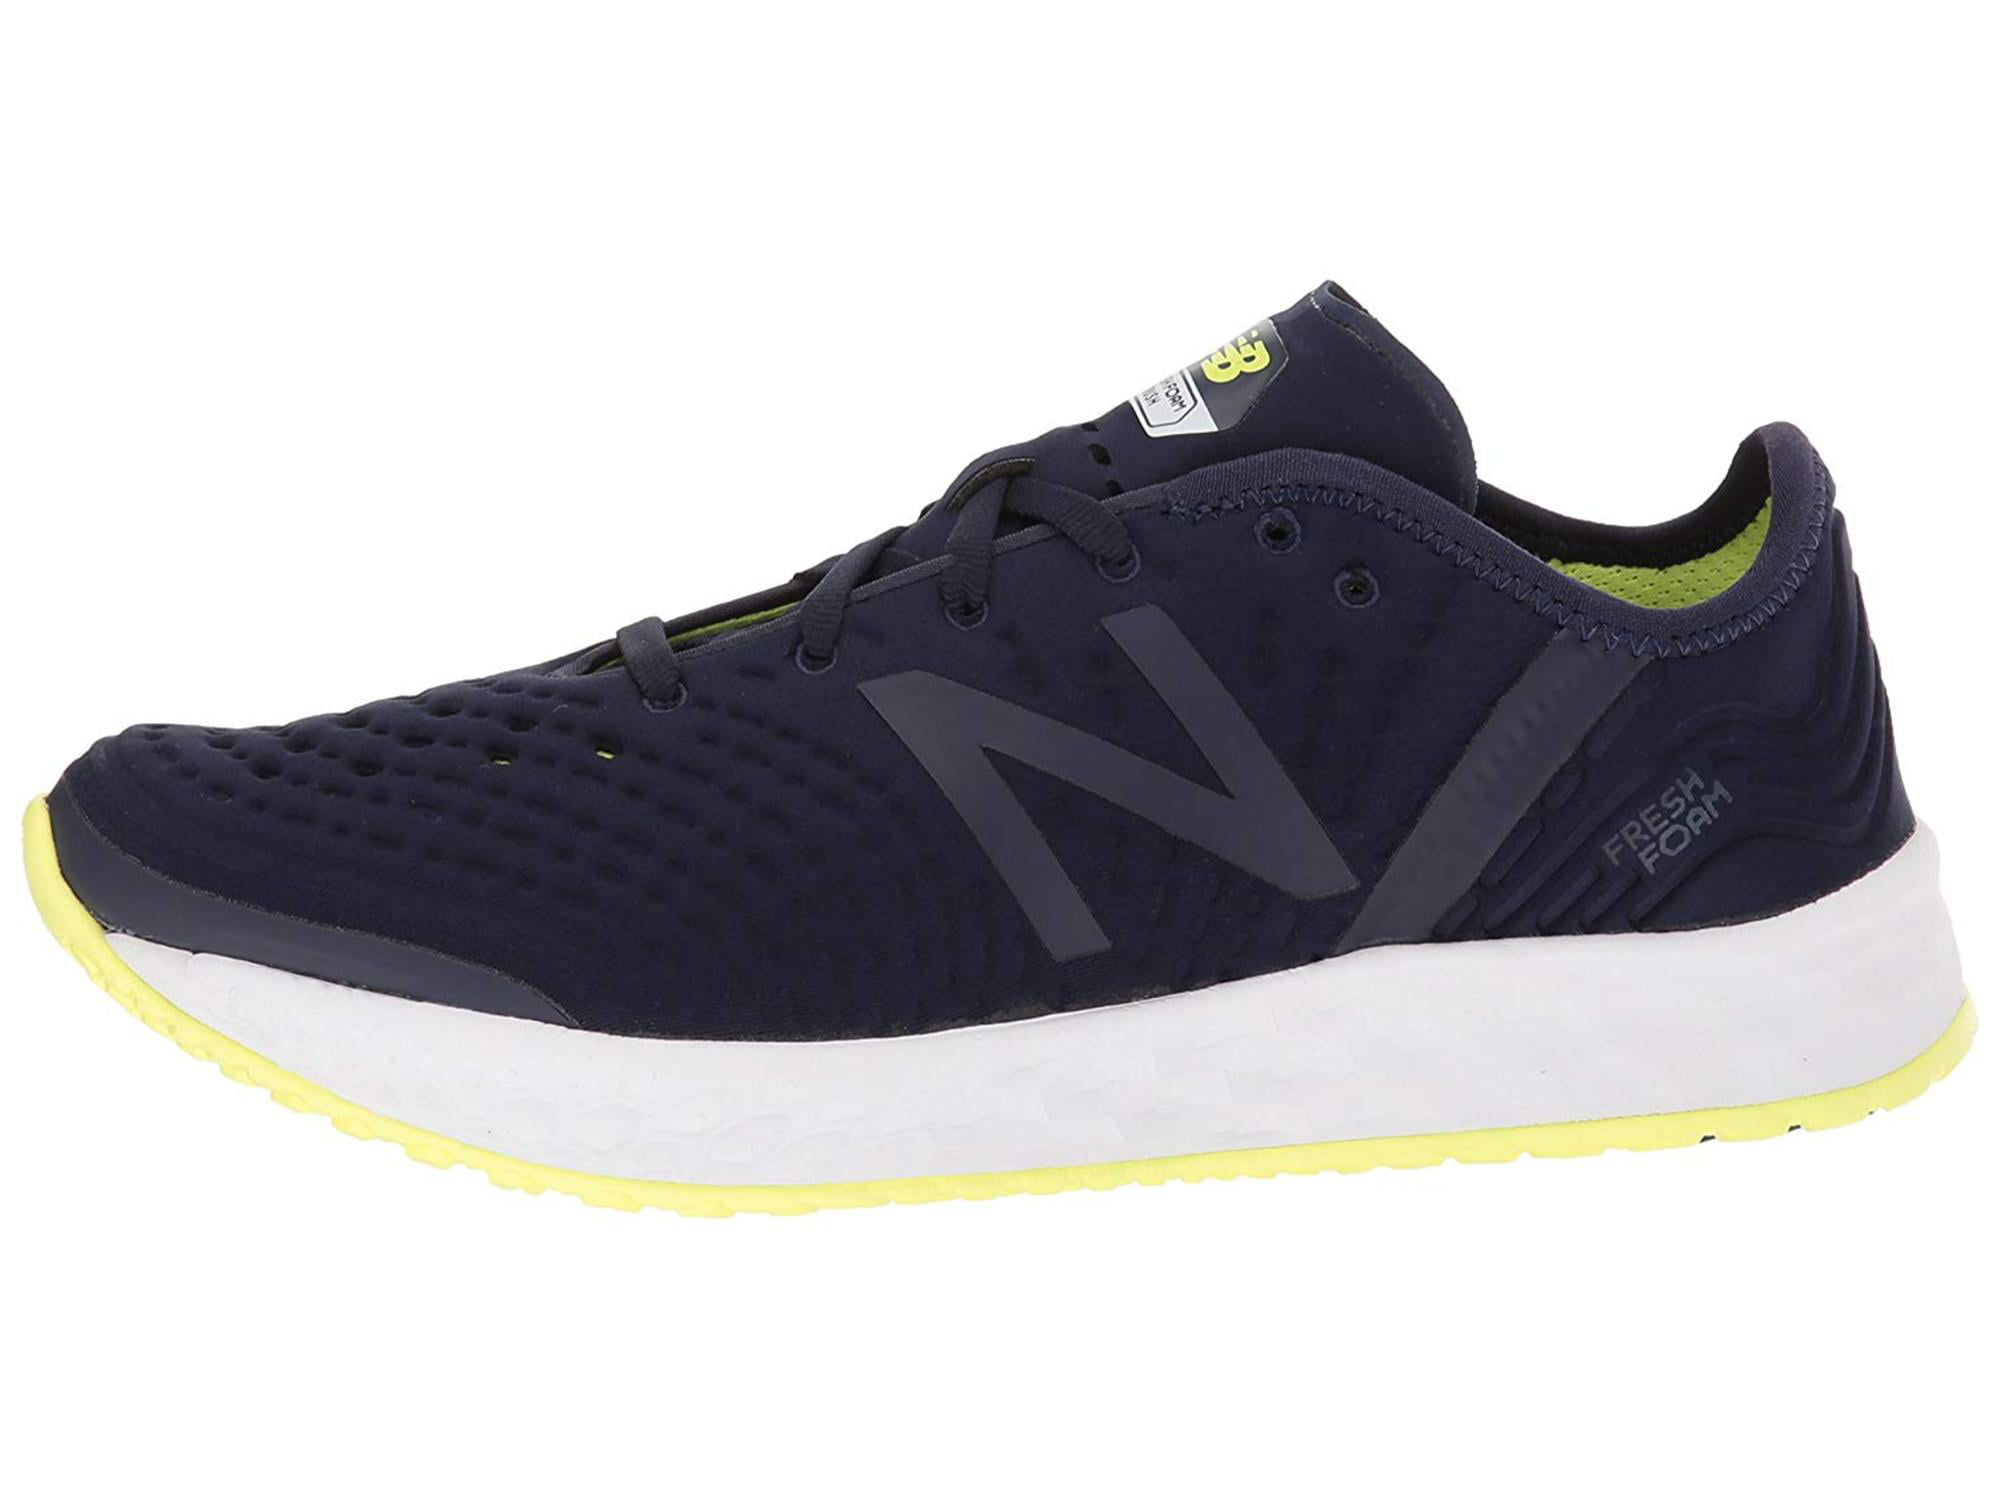 New Balance Womens Wxcrsps Low Top Lace Up Running Sneaker by New Balance